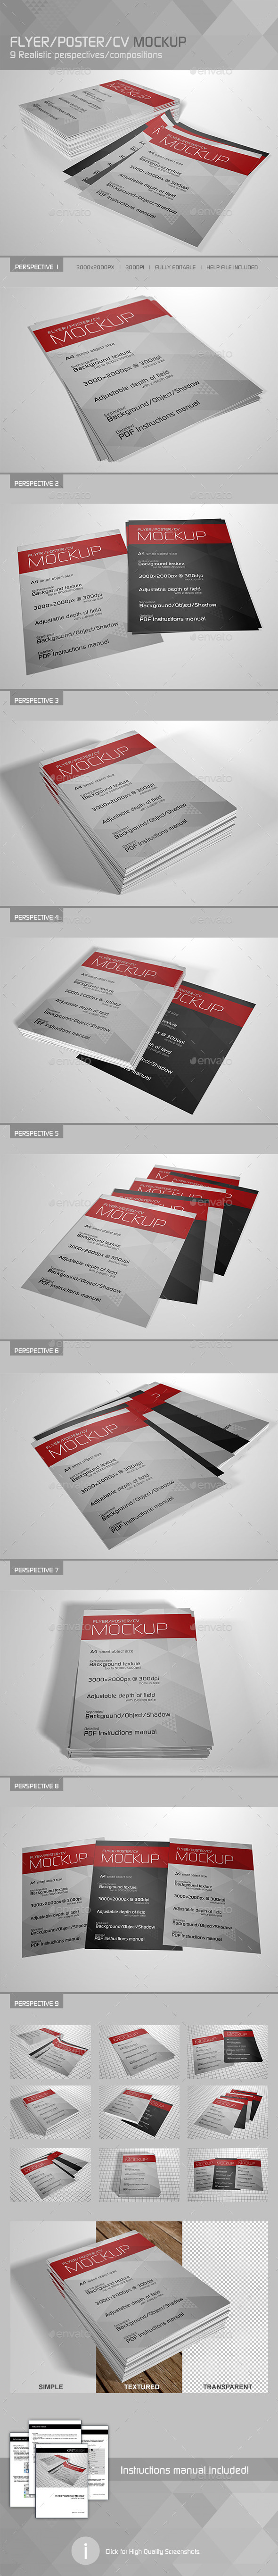 GraphicRiver Realistic Flyer Poster CV Mockup 3 10555544